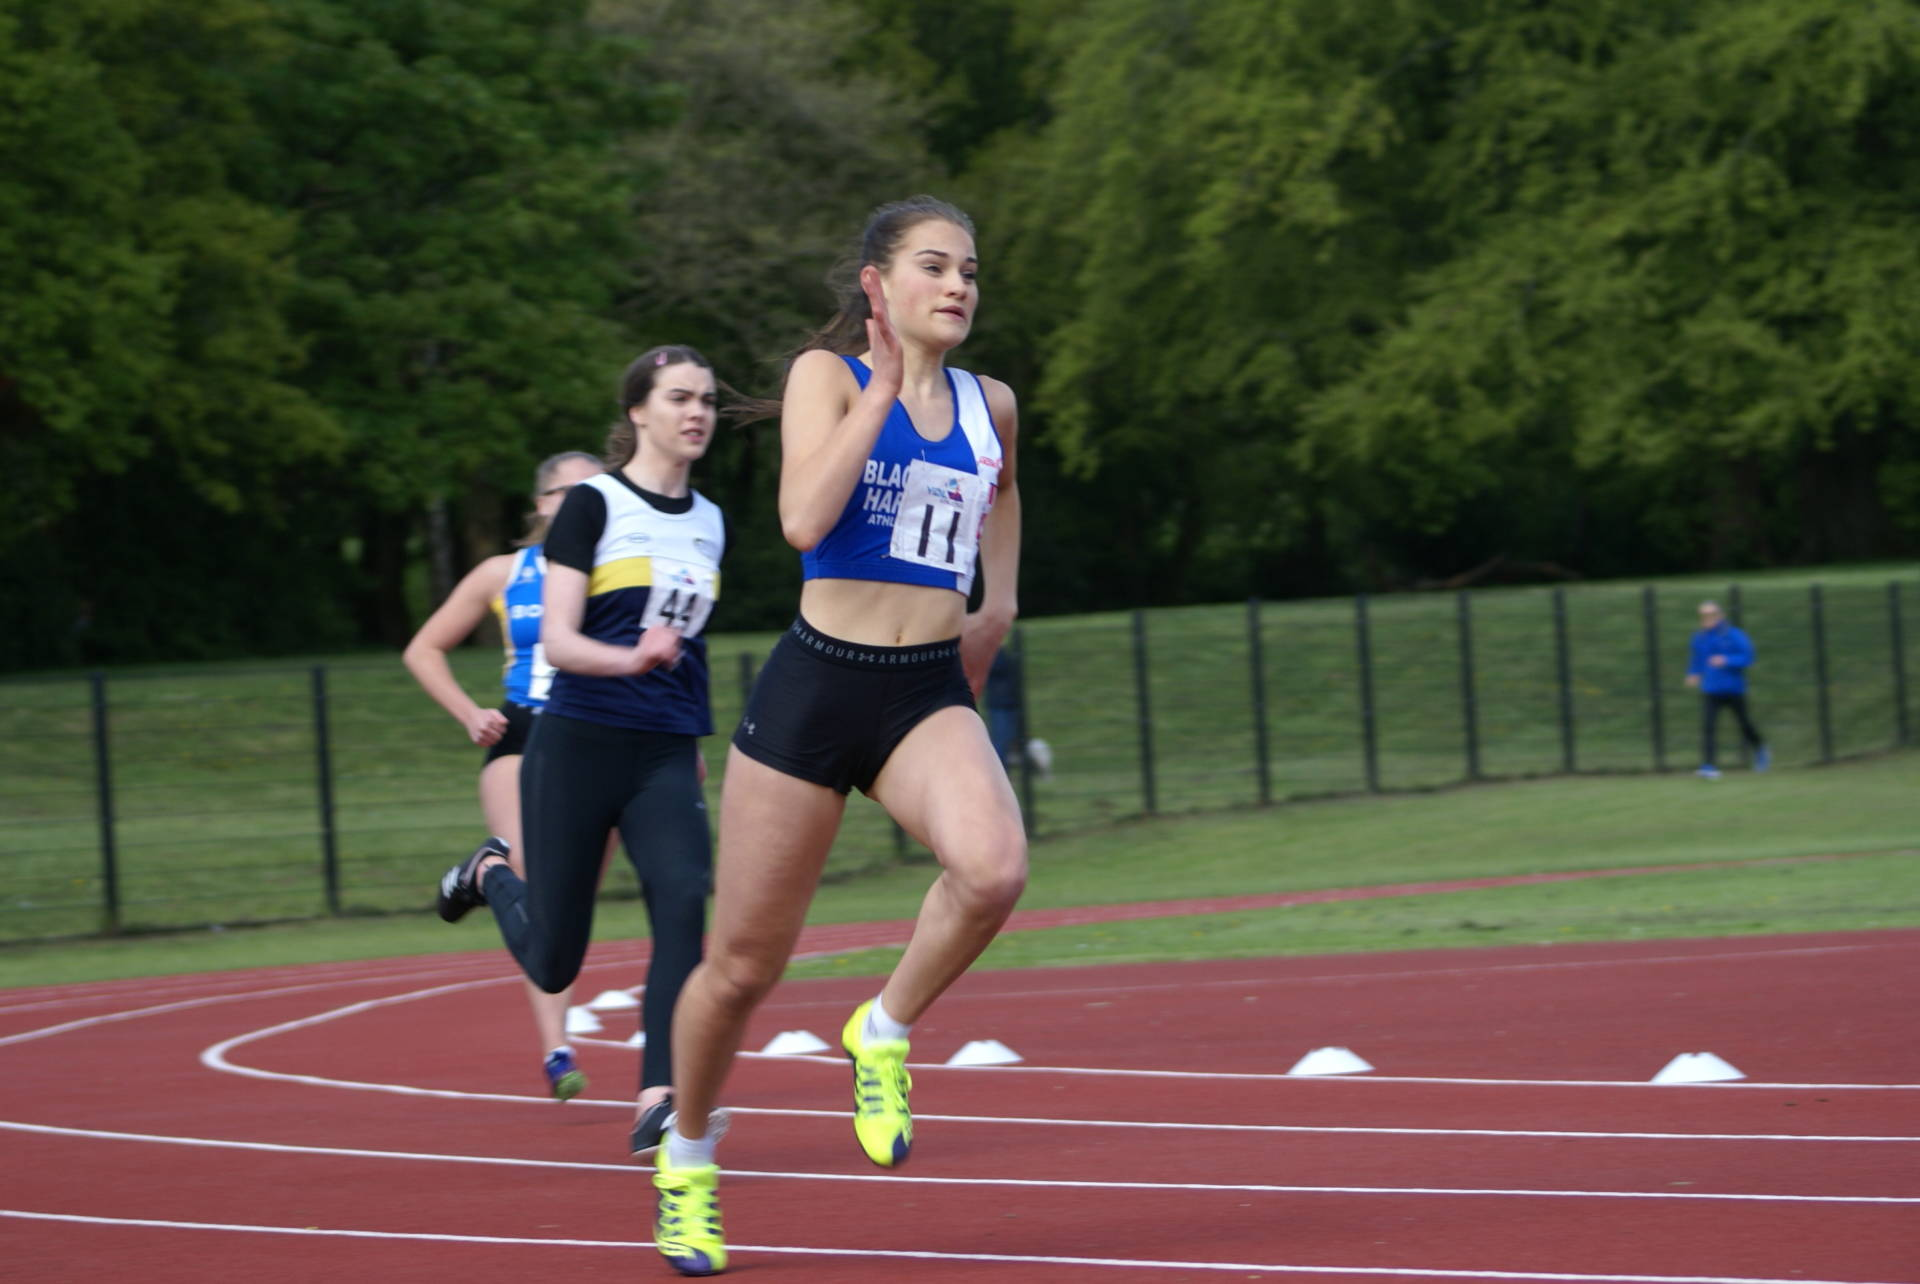 Charlotte goes to No. 1 in National Hammer Rankings + Sam at No. 4 – Matthew at No.6  &  Anthony at No.14 – 22 New PB's for Harriers in UKYDL (3000m ES qualifying time for Matt + U17 Hammer ES qualifying distance for Matthew) – Trafford & York Open Meetings